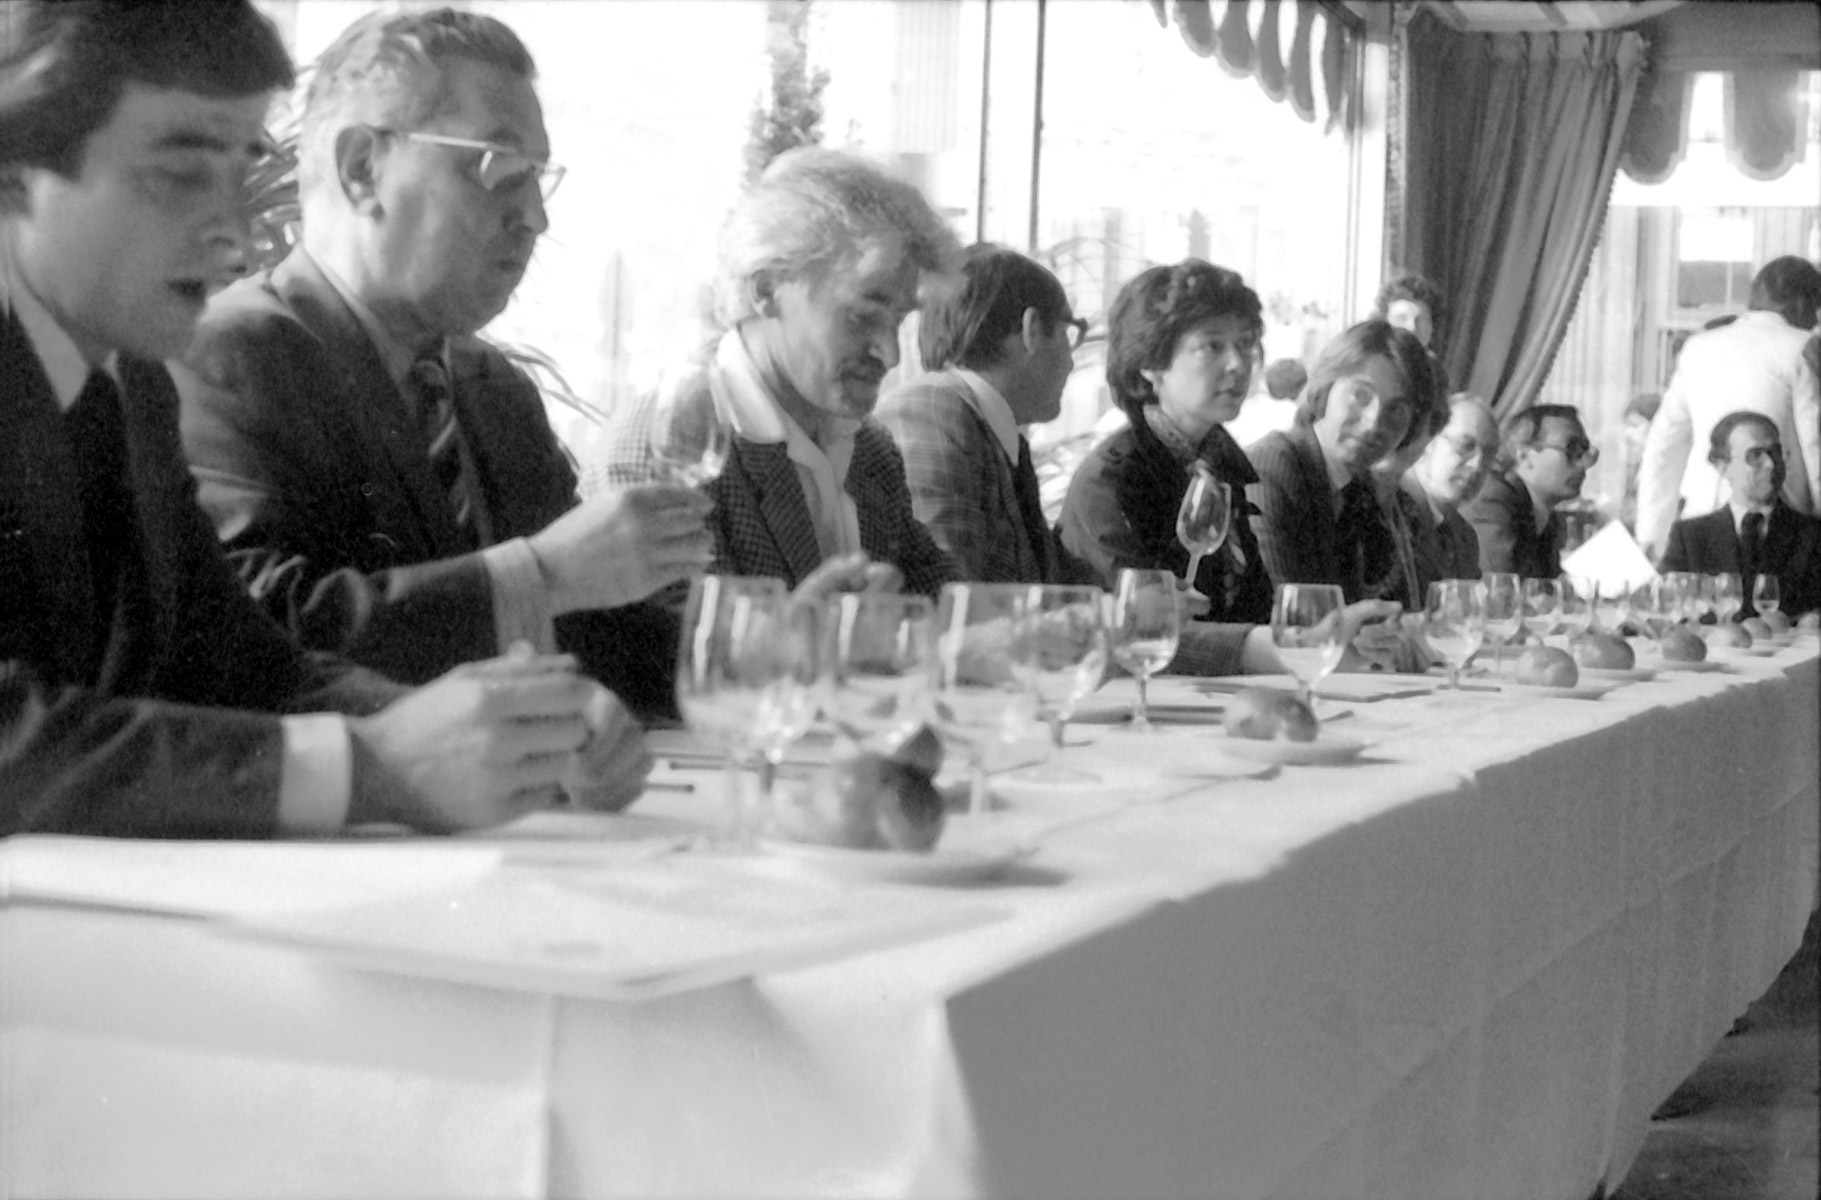 Judgement of Paris: What you might not know